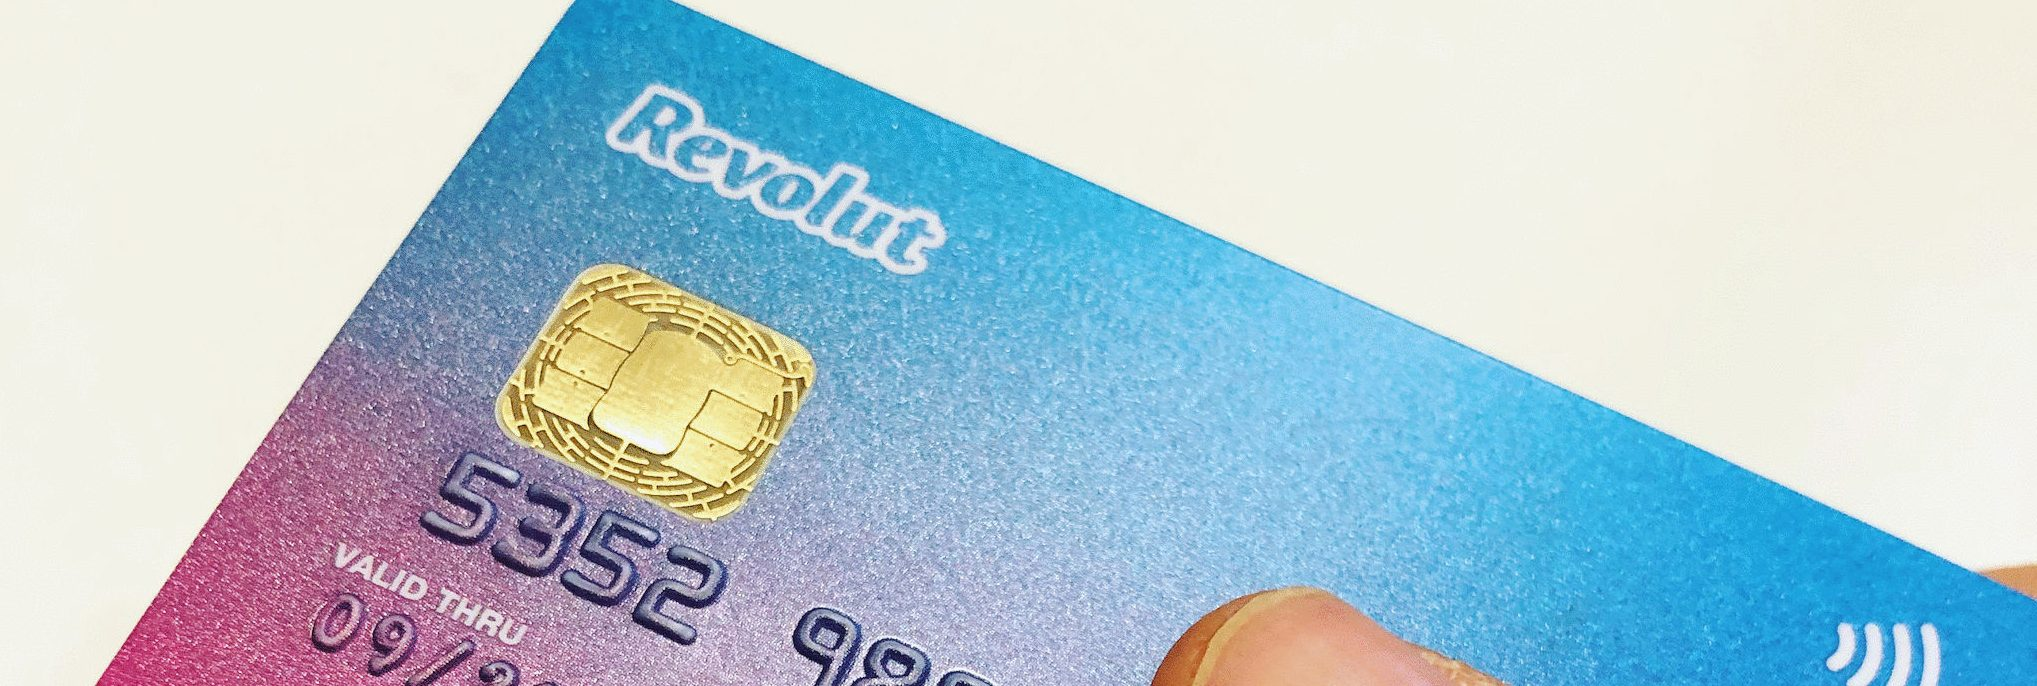 The Digital Banking Revolution And What It Means For Digital Nomads. Revolut card.